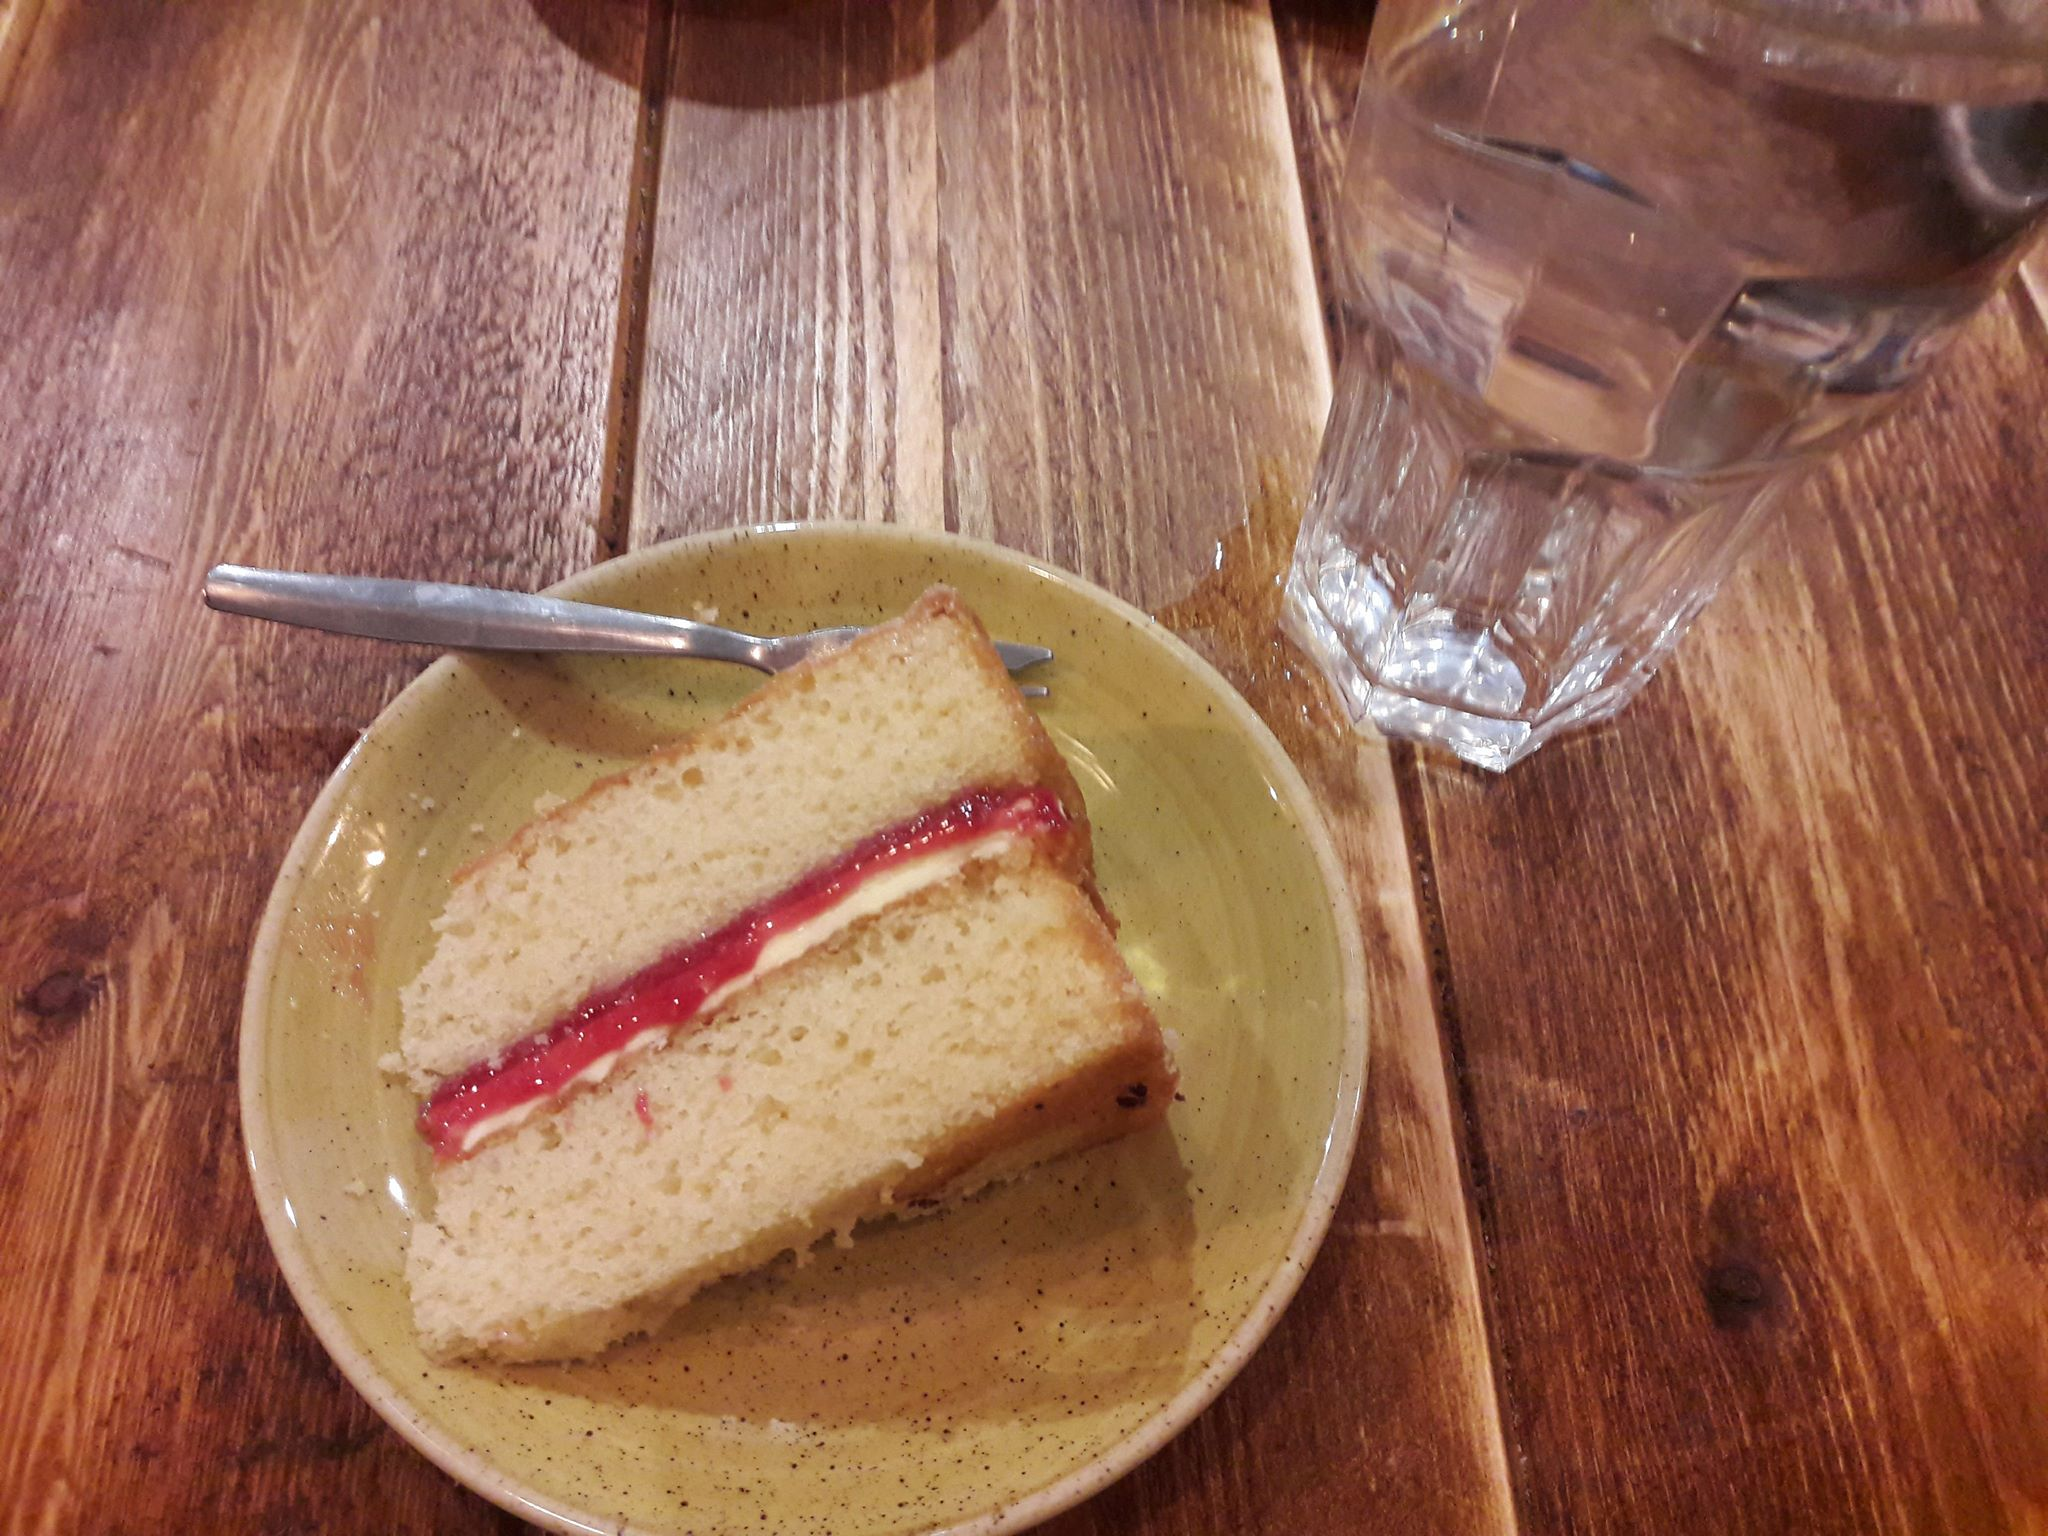 Image of a slice of Victoria sponge cake on a small plate and a glass of water, both on a wooden table